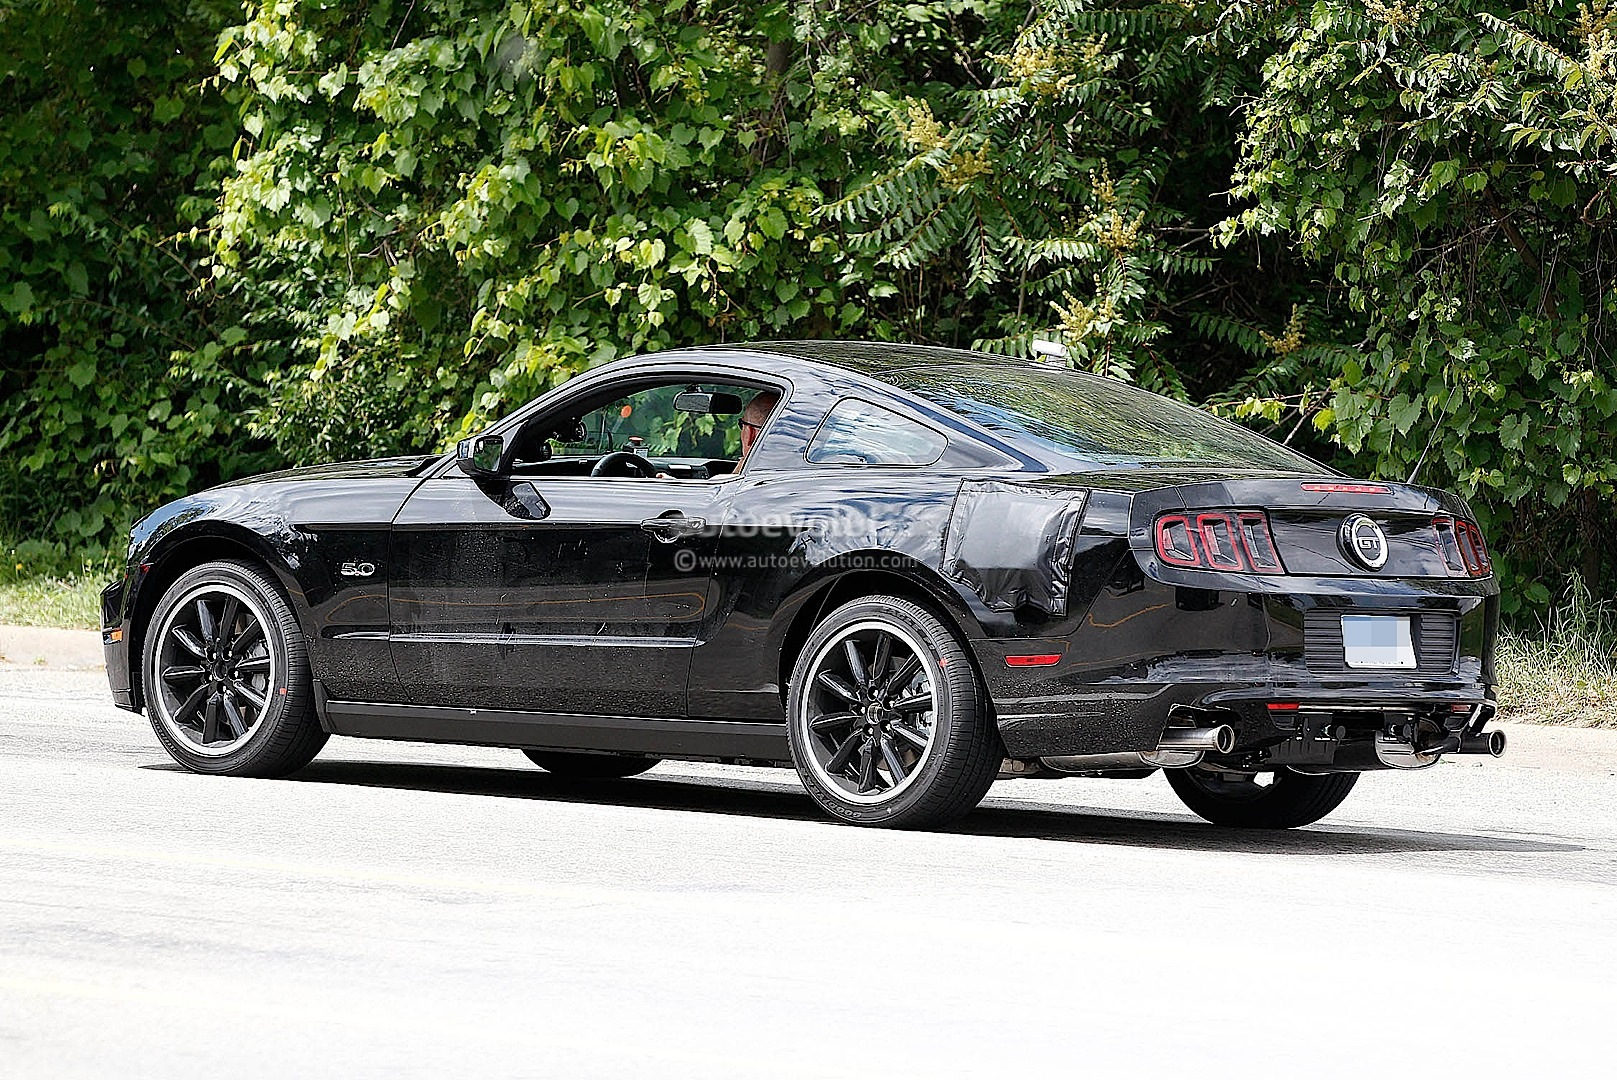 2015 Ford Mustang Test Mule Spy Shots #1/6